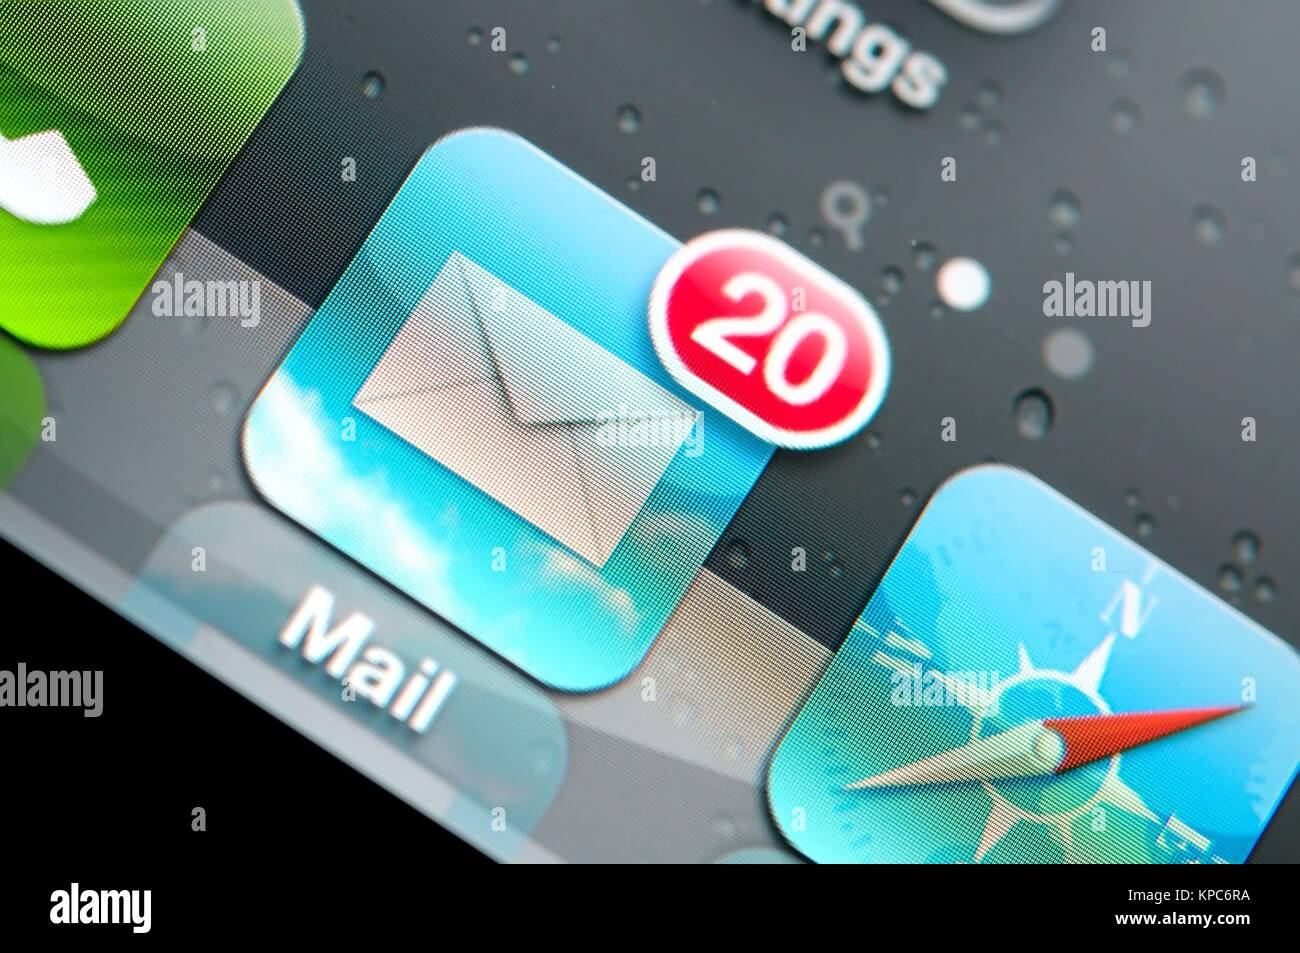 Macro shot of email icon on lcd display. - Stock Image